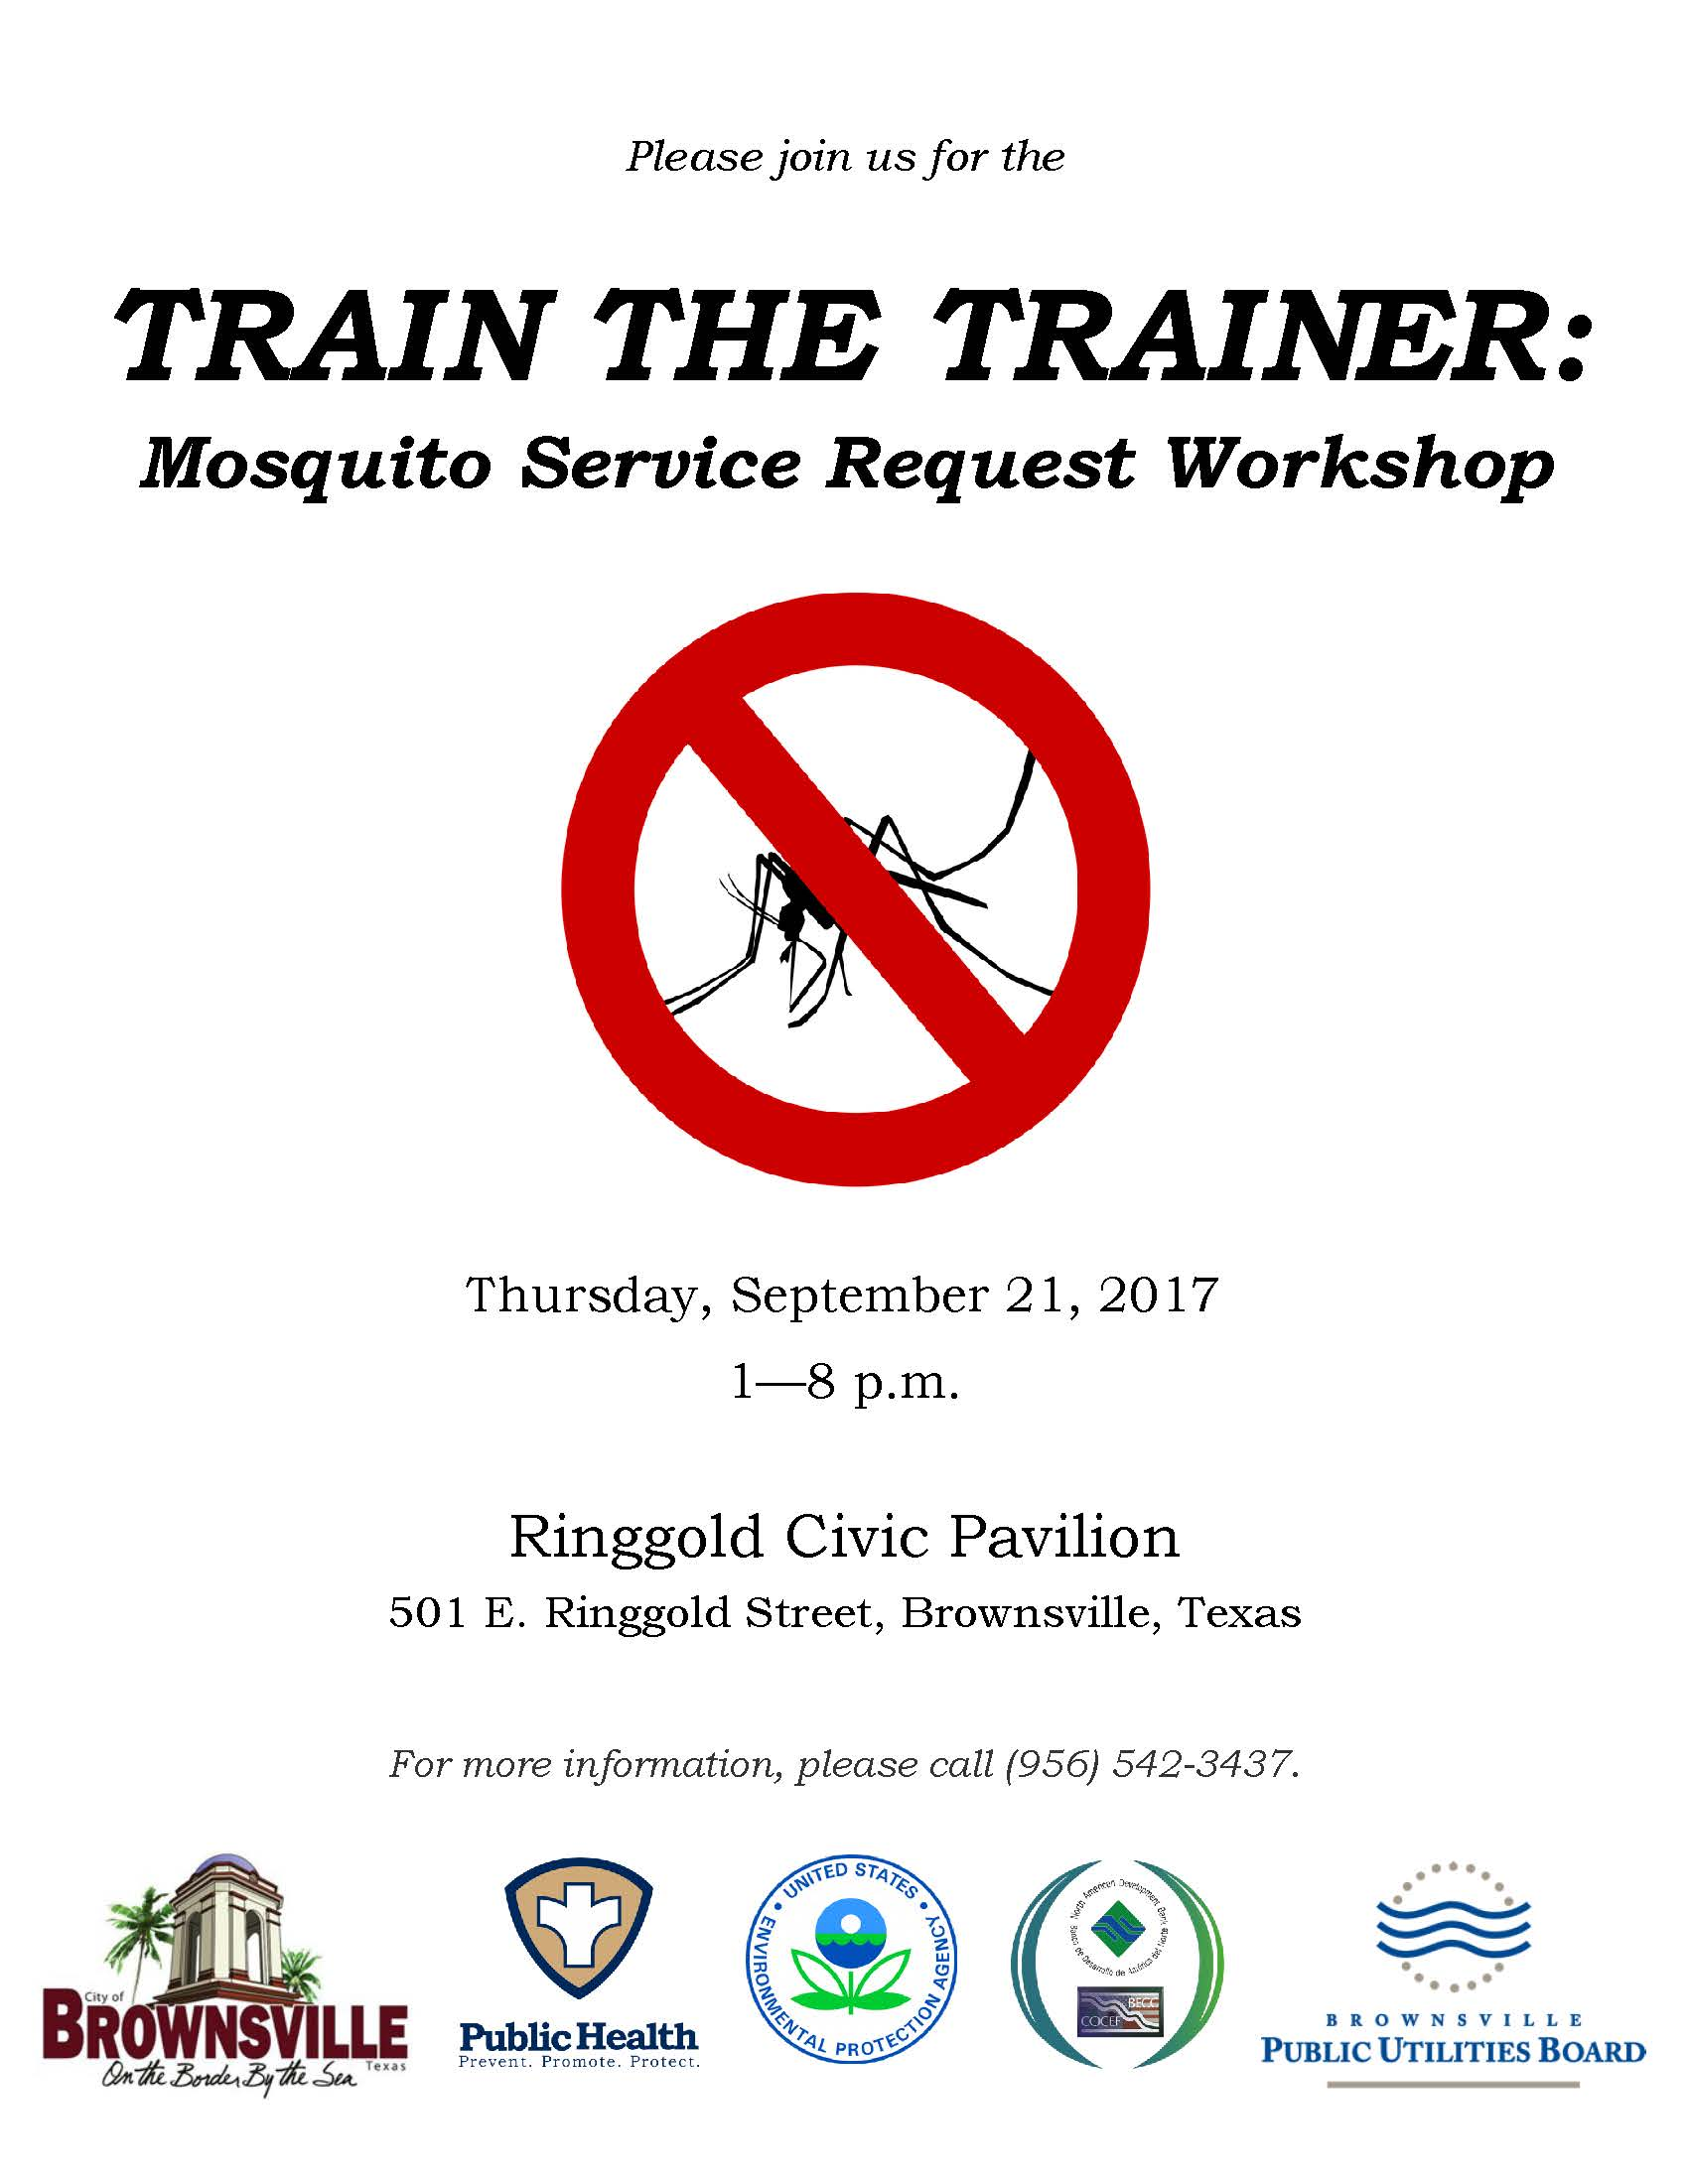 Train the Trainer - Mosquito Service Request Workshop Flyer